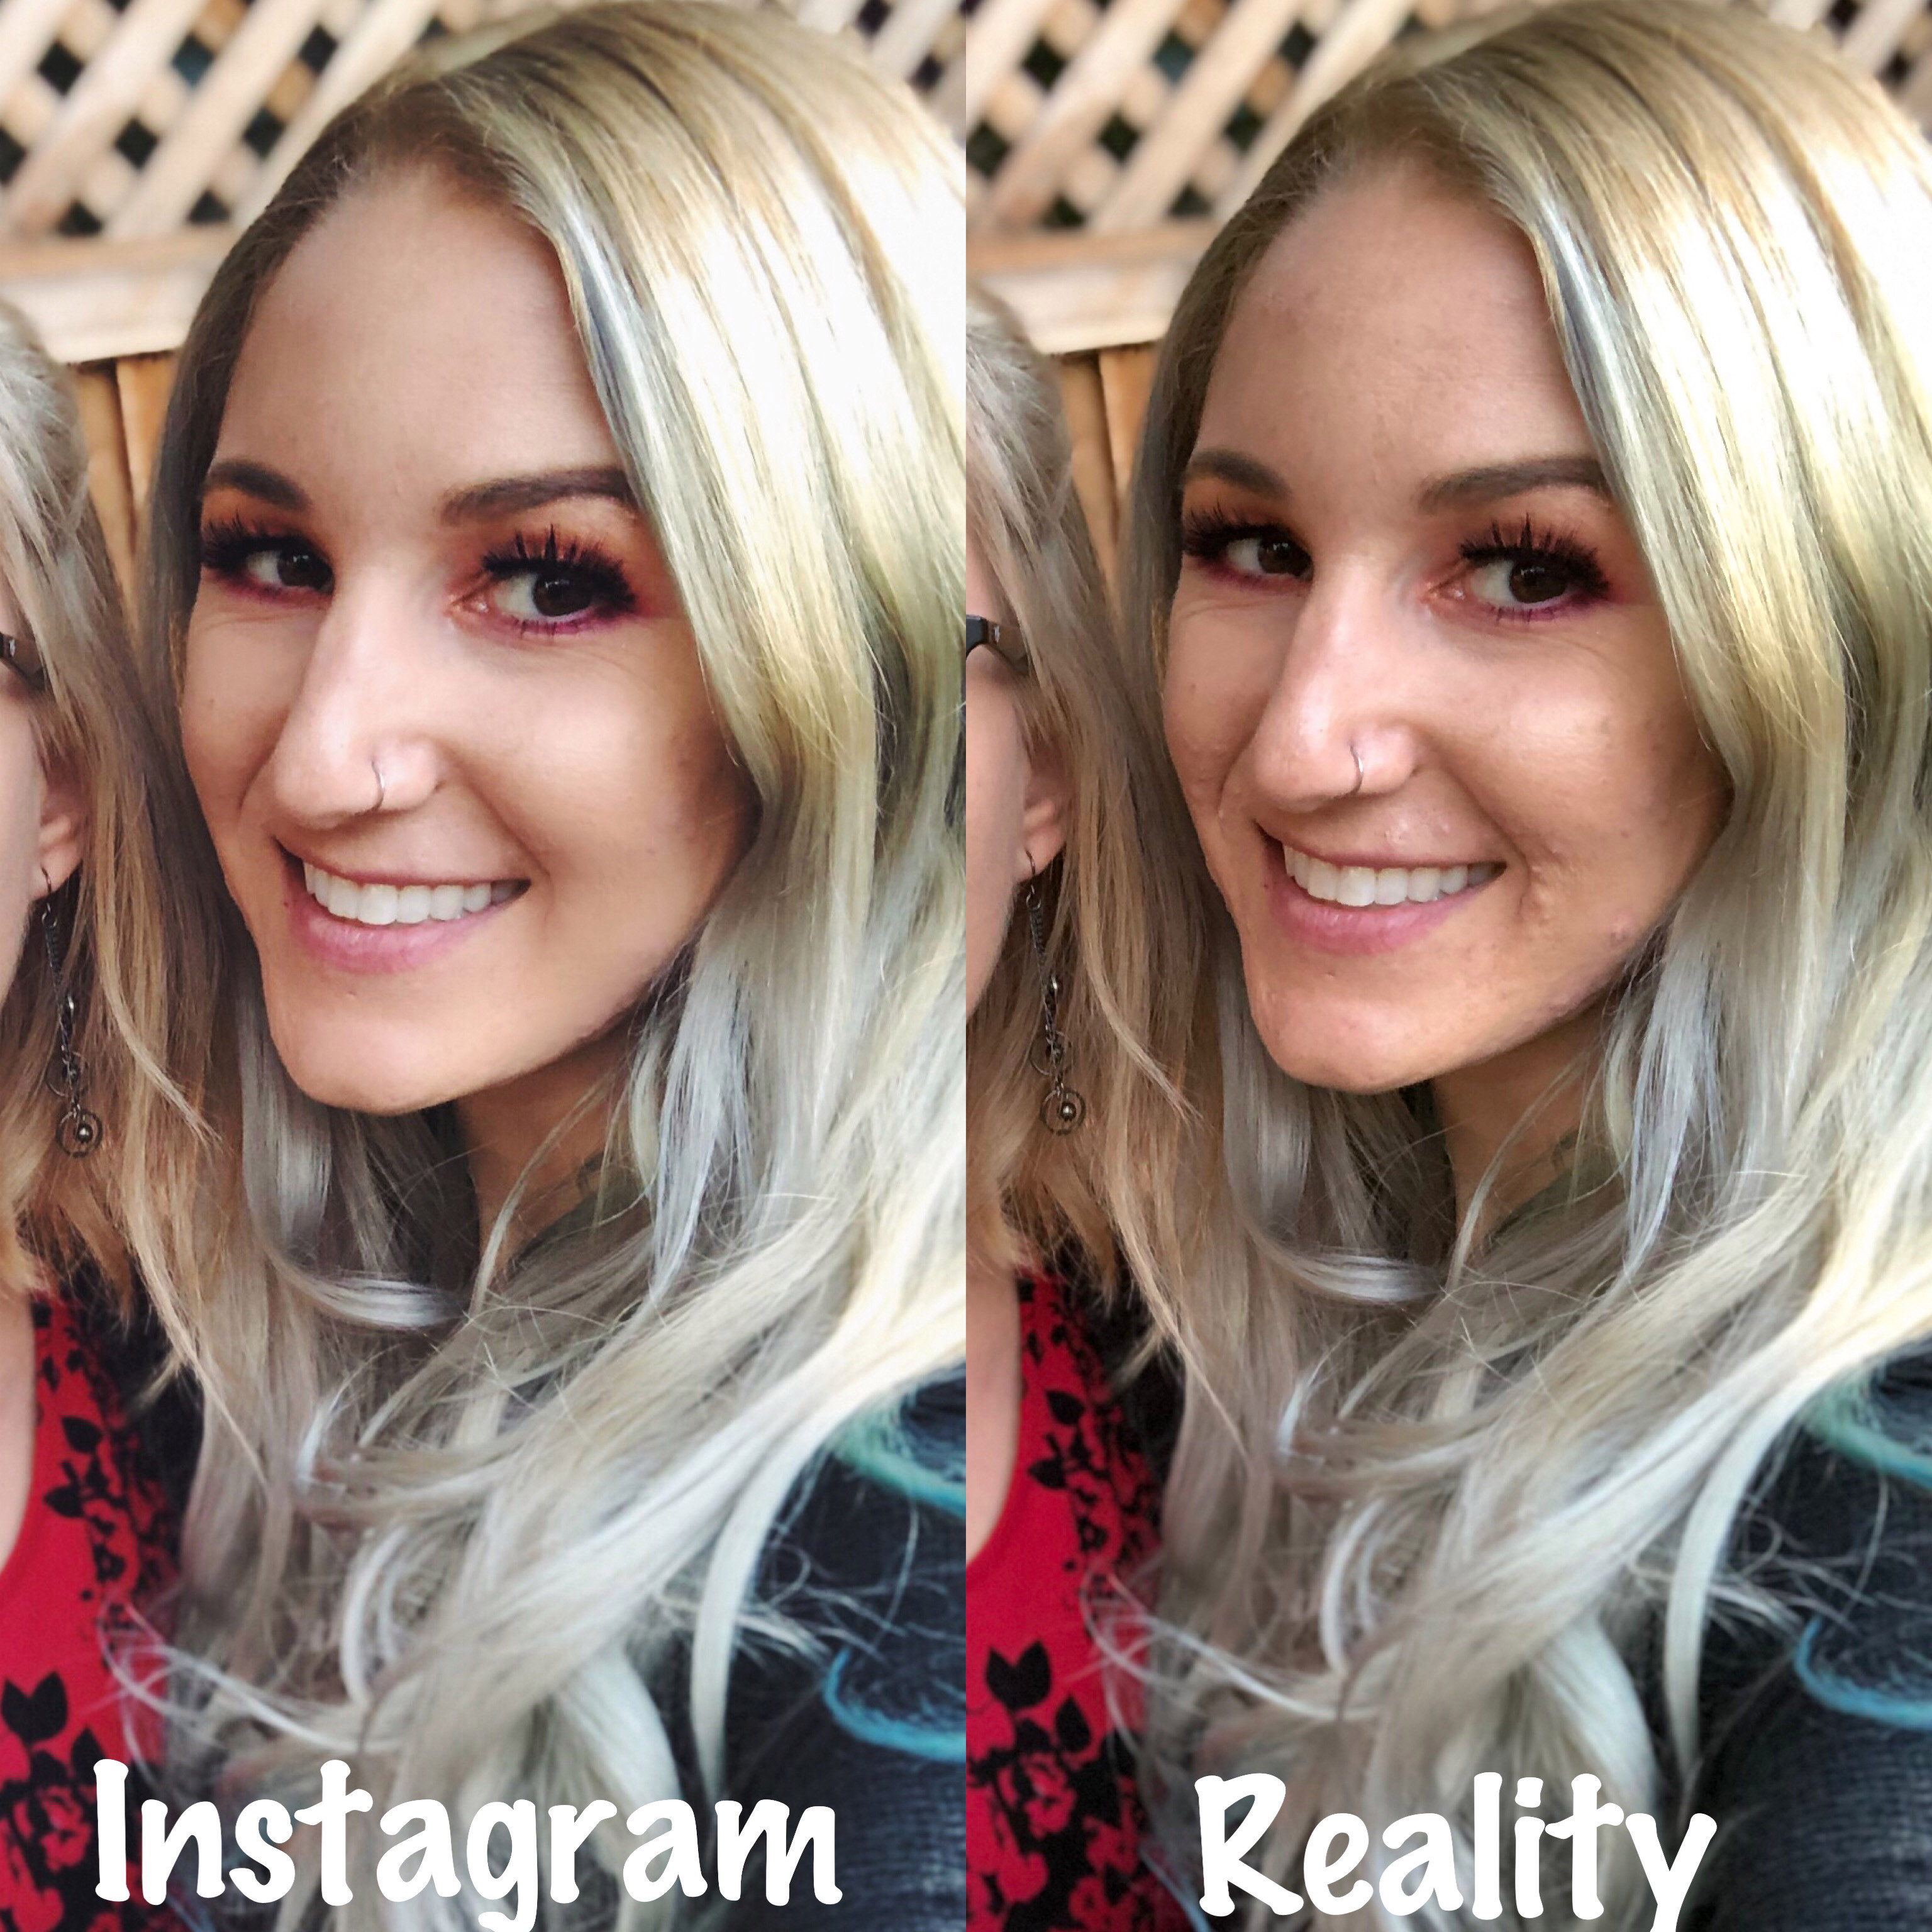 The 30-year-old says she feels like a'catfish' when using editing apps